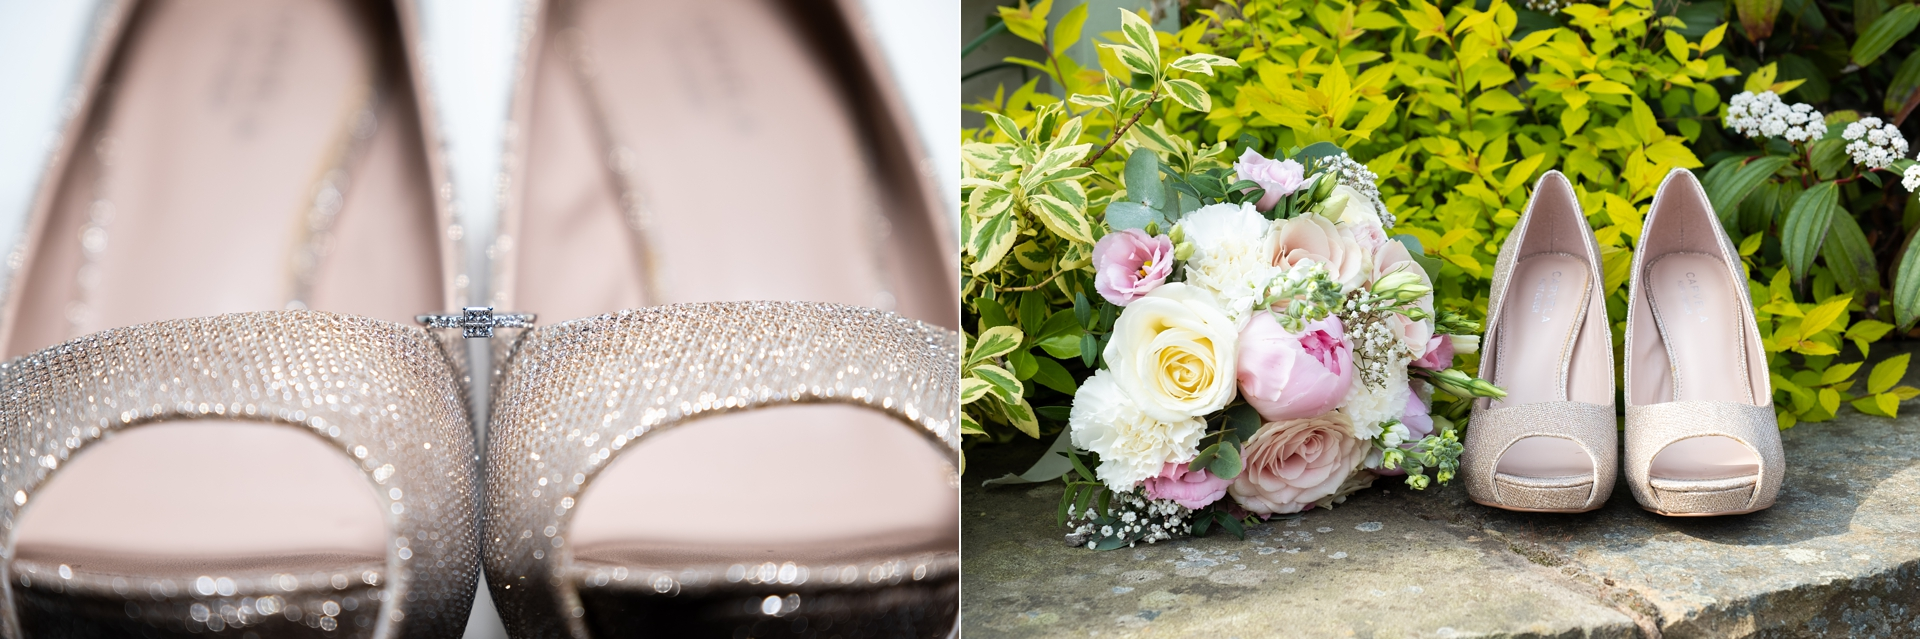 wedding the plough endon cheshire photographer photo 4.jpg